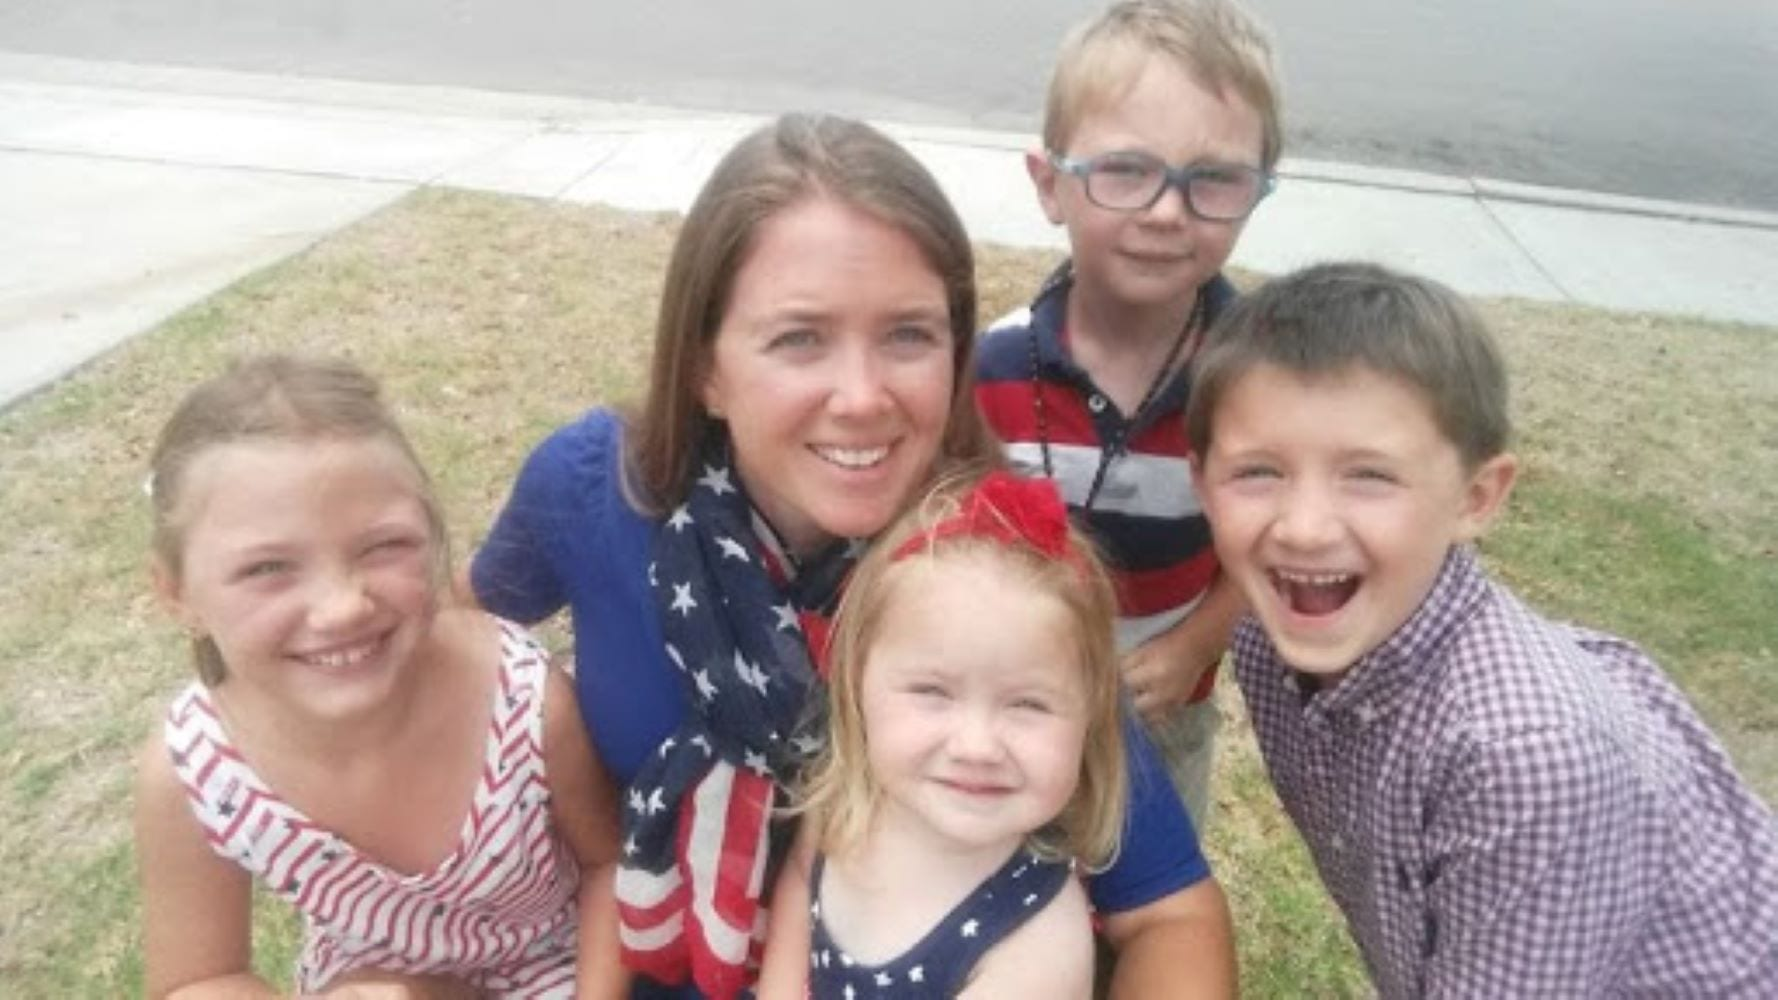 Military mom with children in patriotic clothes